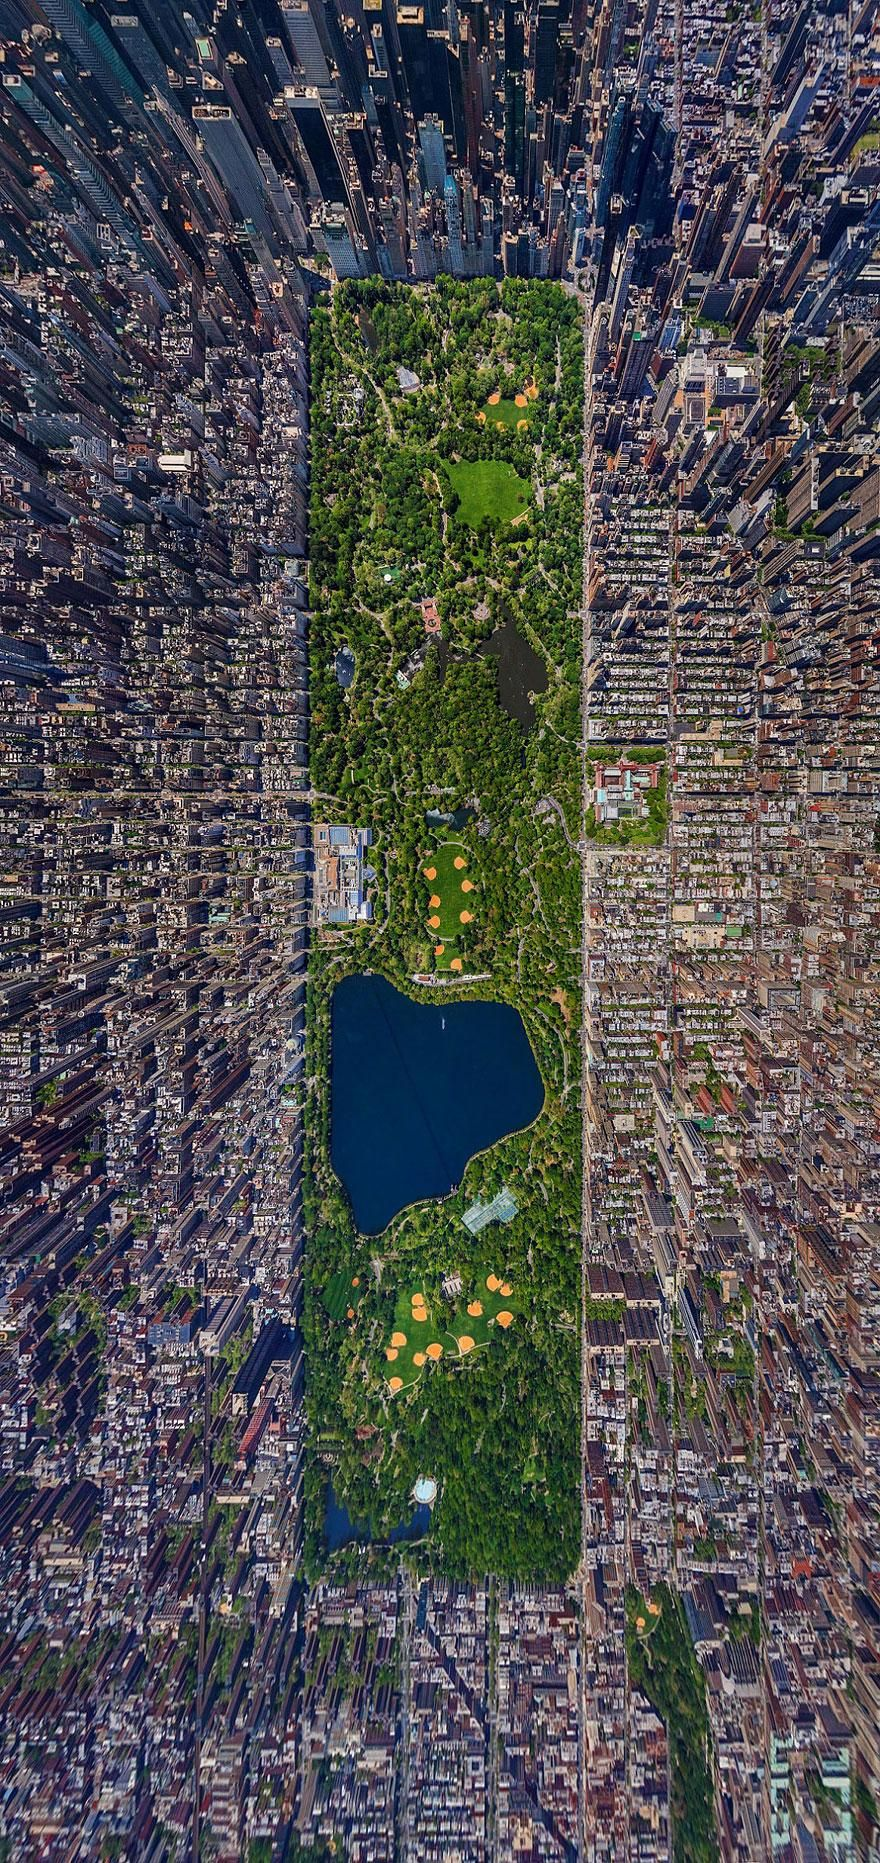 15 Famous Landmarks Zoomed Out To Capture Their Surroundings I Central Park I Found on: http://goodmood-gm.com/art/photography/15-famous-landmarks-zoomed-out-capture-surroundings/